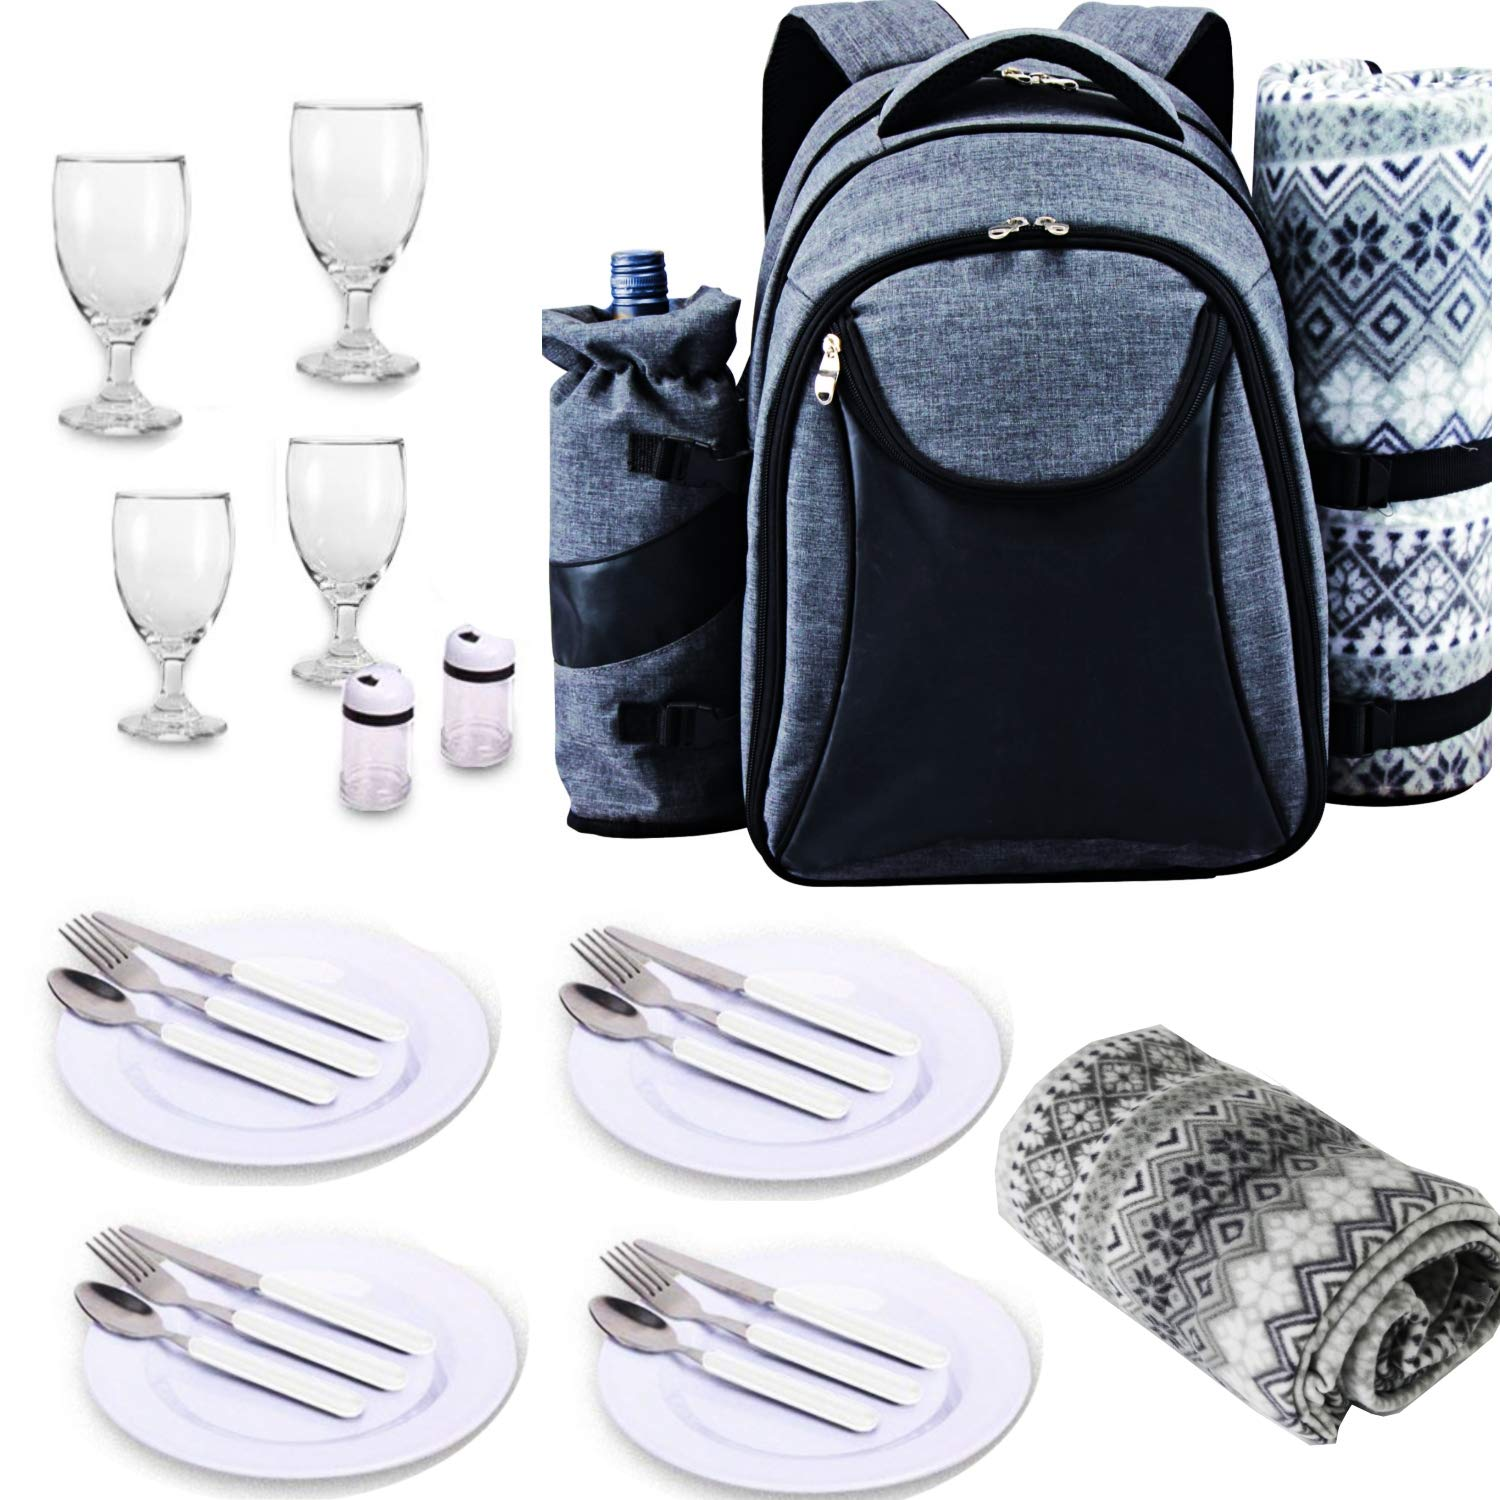 Scuddles Picnic Backpack Basket 4 Person Picnic Set Great Weddings Or Anniversary ((Model 1 Picnic Backpack) by Scuddles